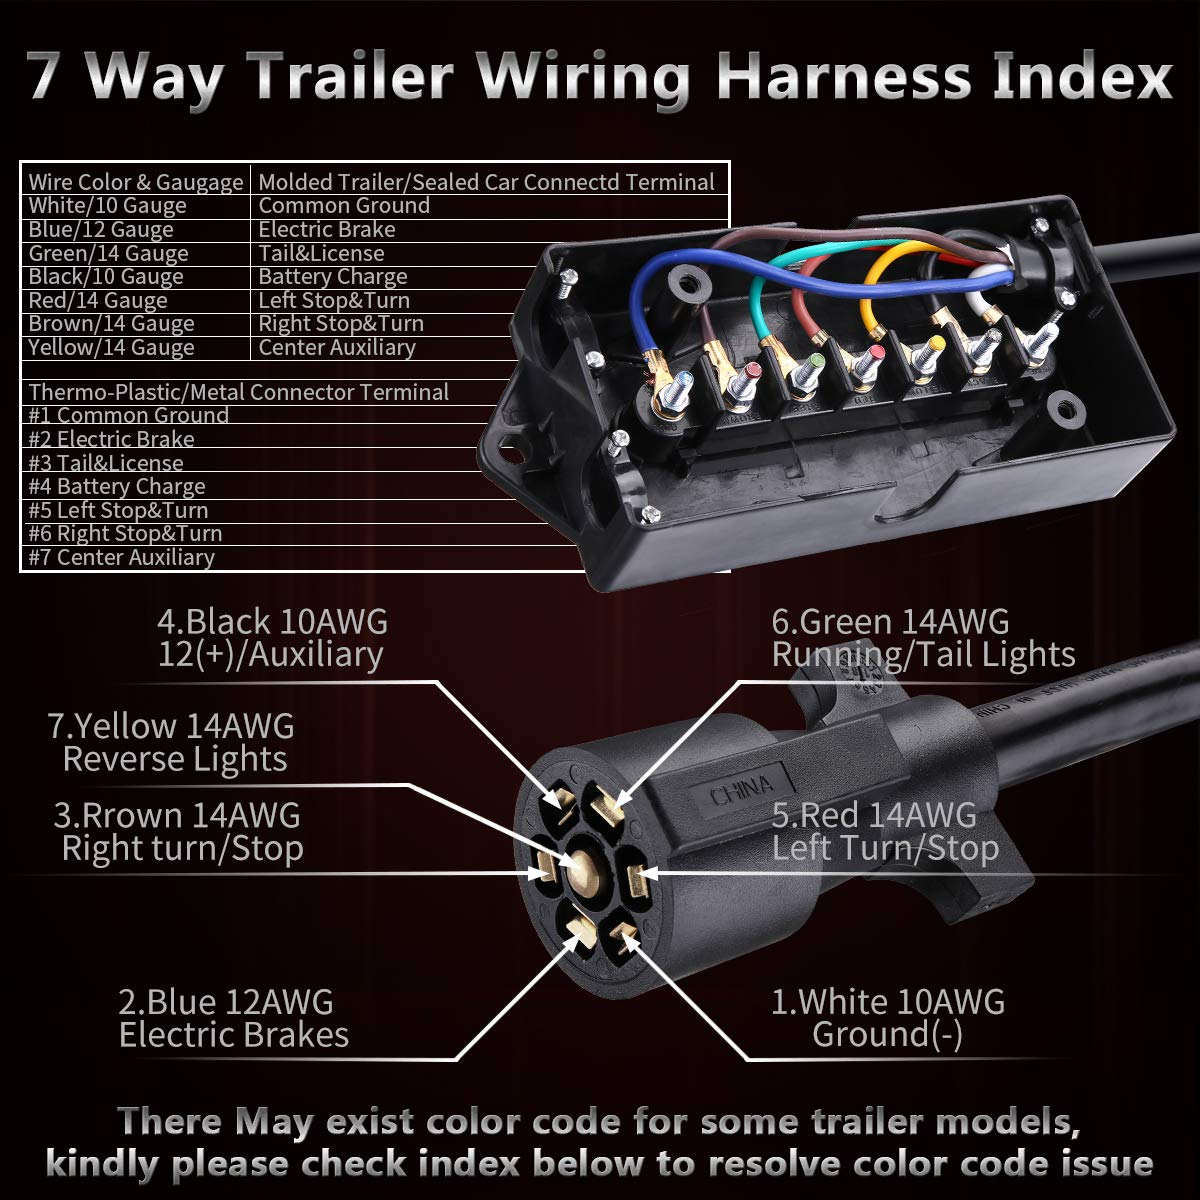 Wiring Diagram For Bear Trailer Hitch Harness Color Code Snow Tail Light Libraryamazon Com Kaslight 8ft Ip68 7 Way